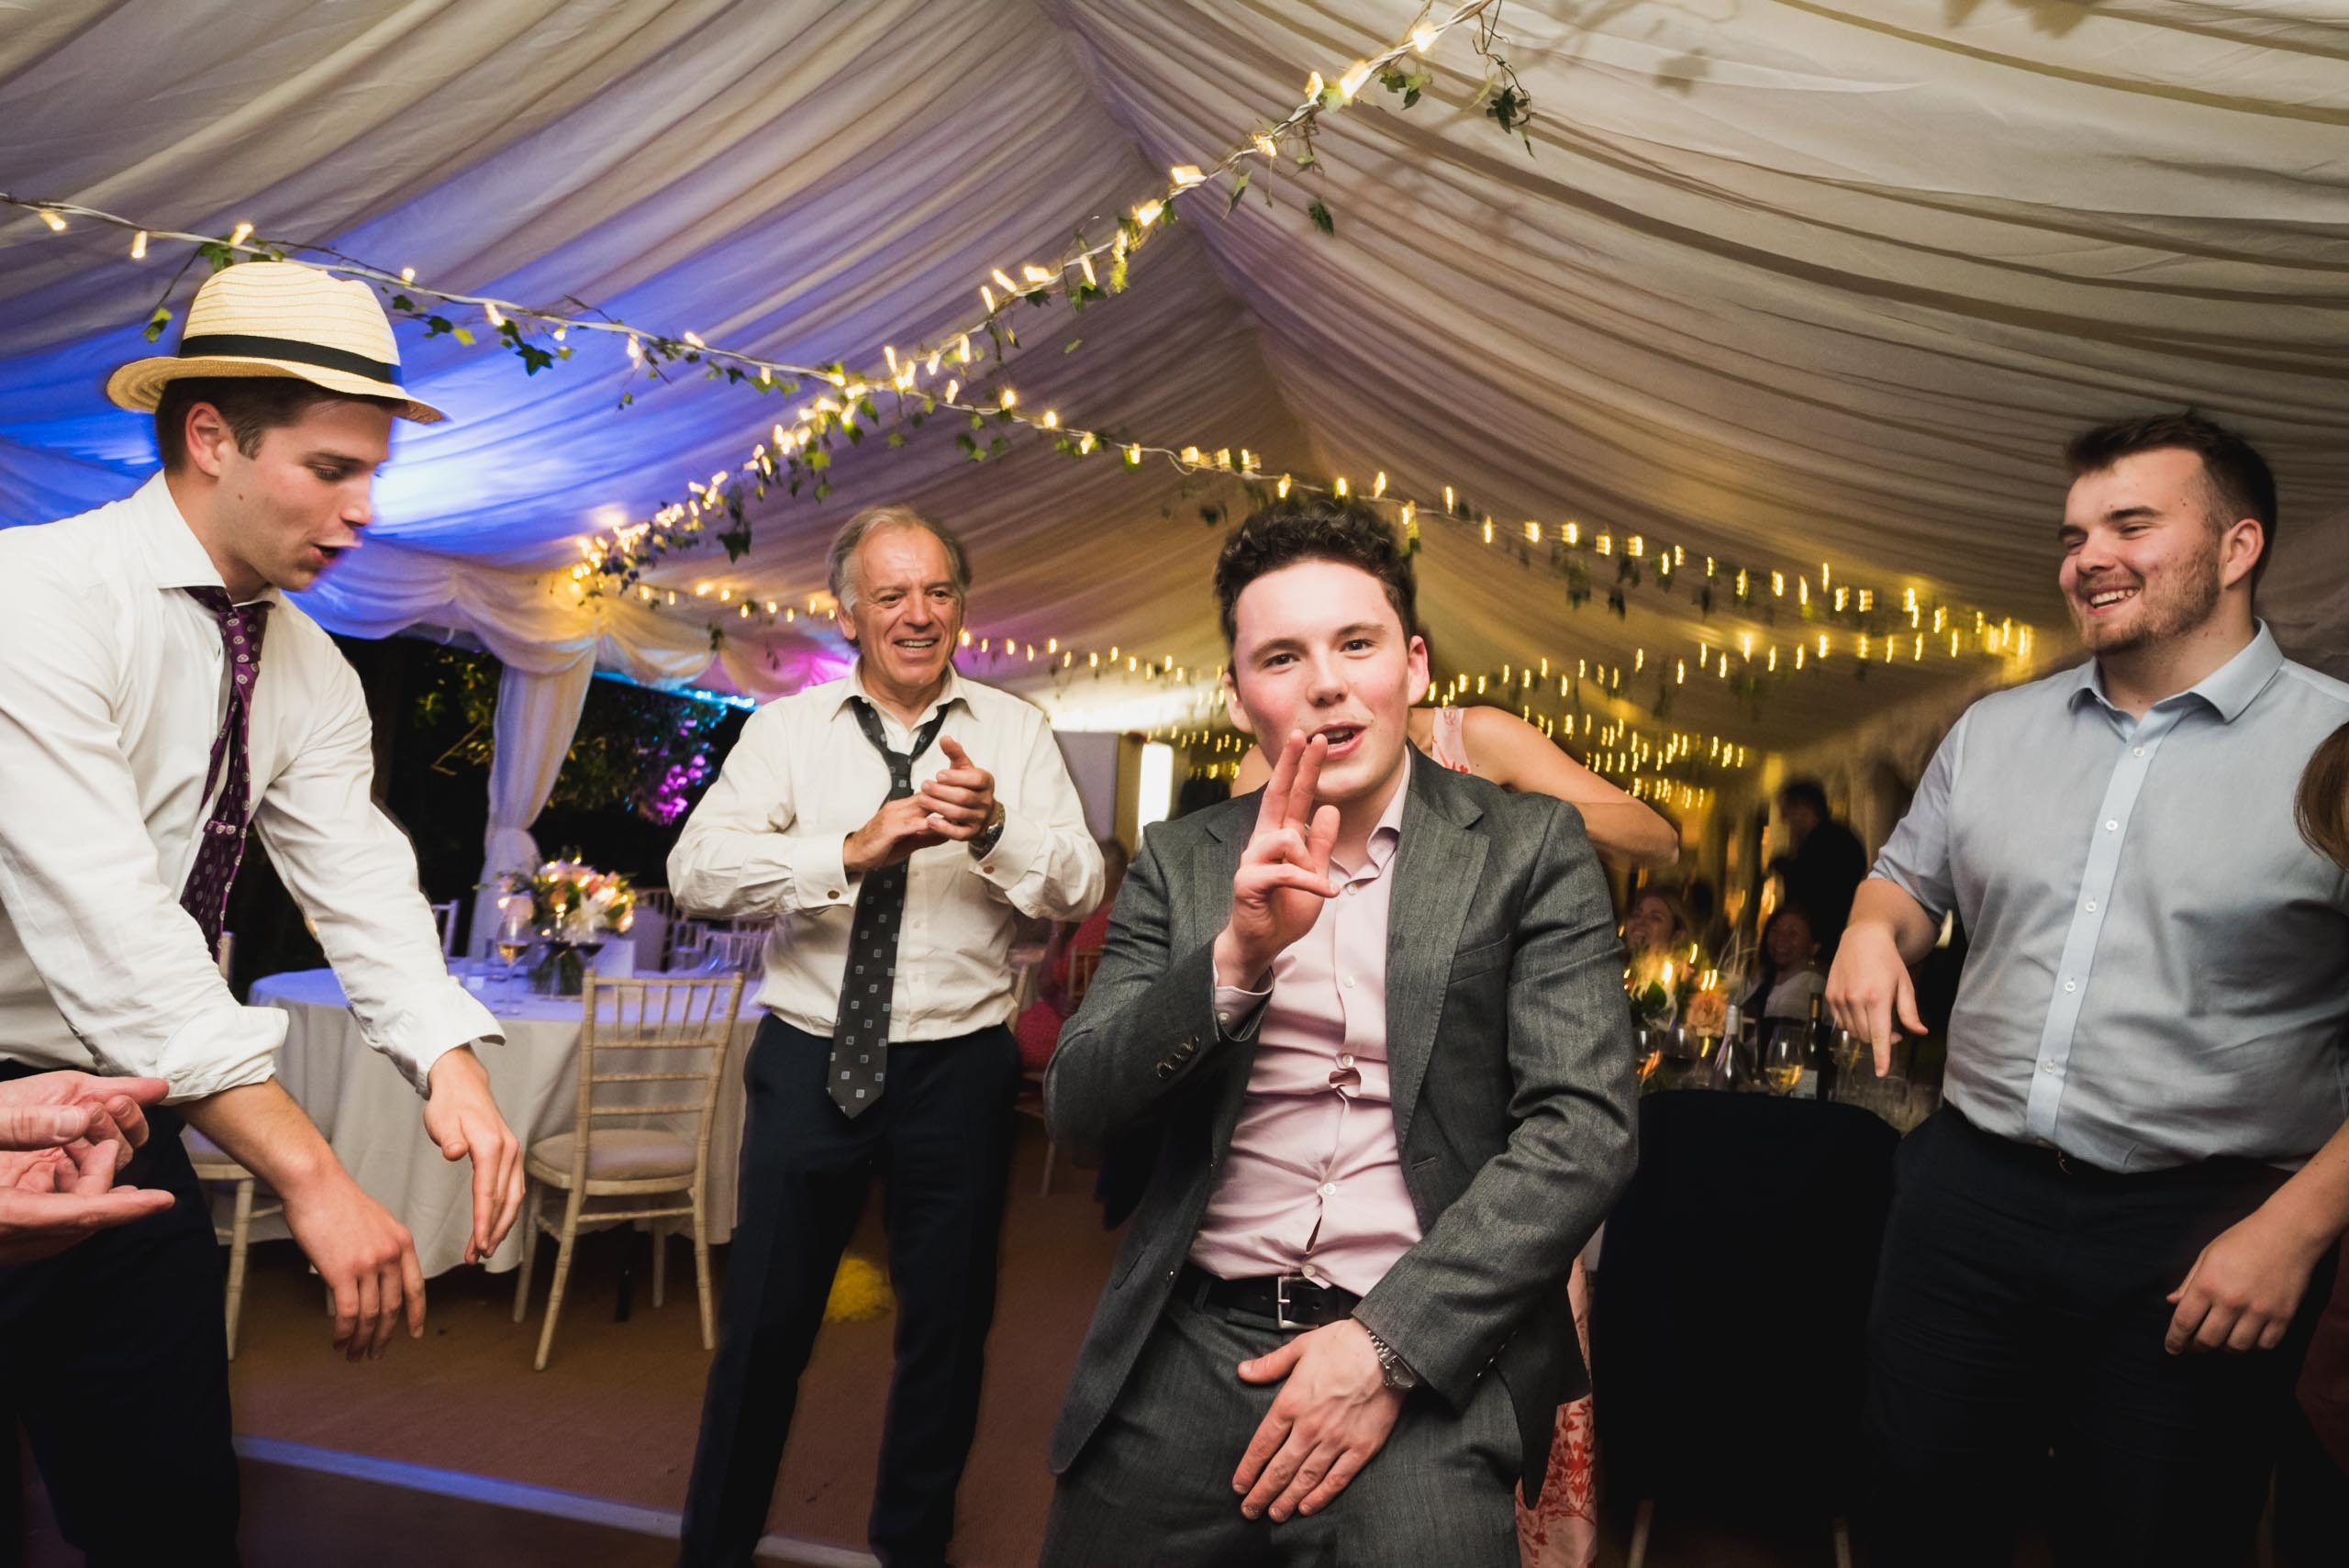 carine bea photography, guests having fun at back garden wedding